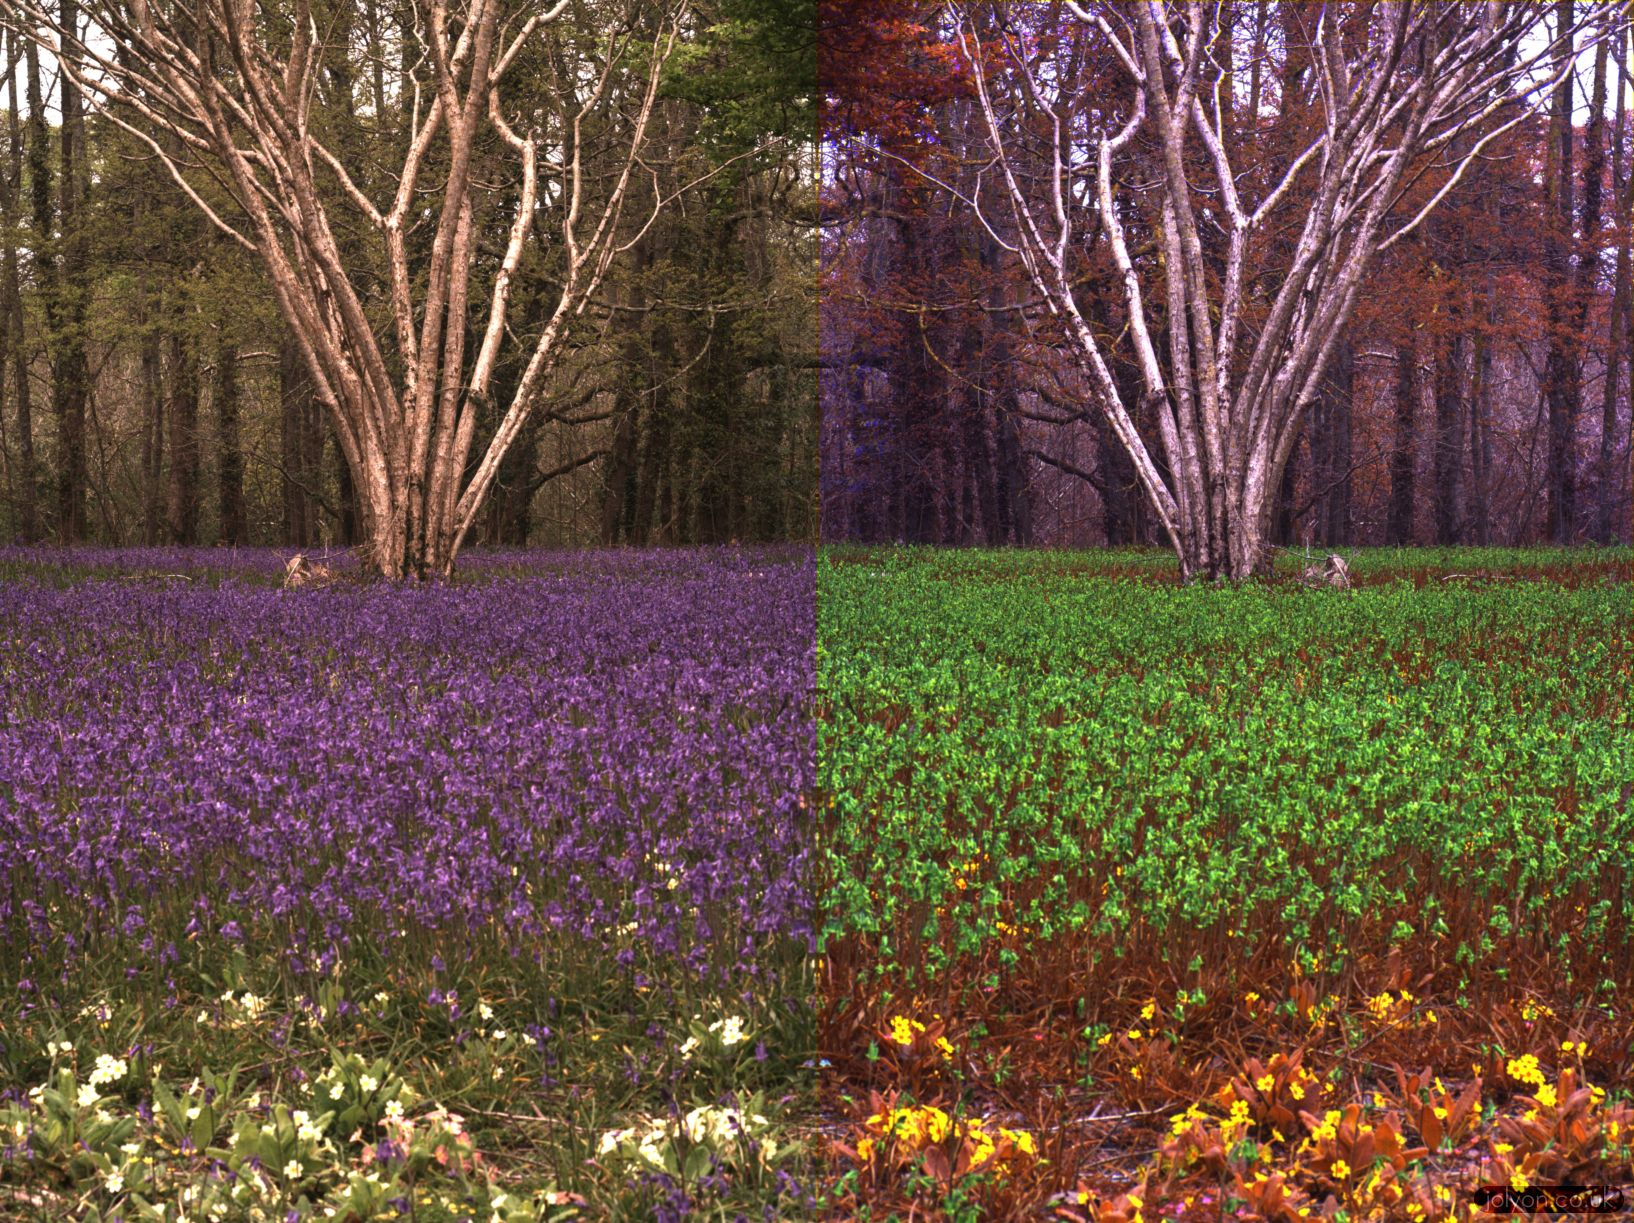 Bluebell display in human (left) and honey bee vision (right).